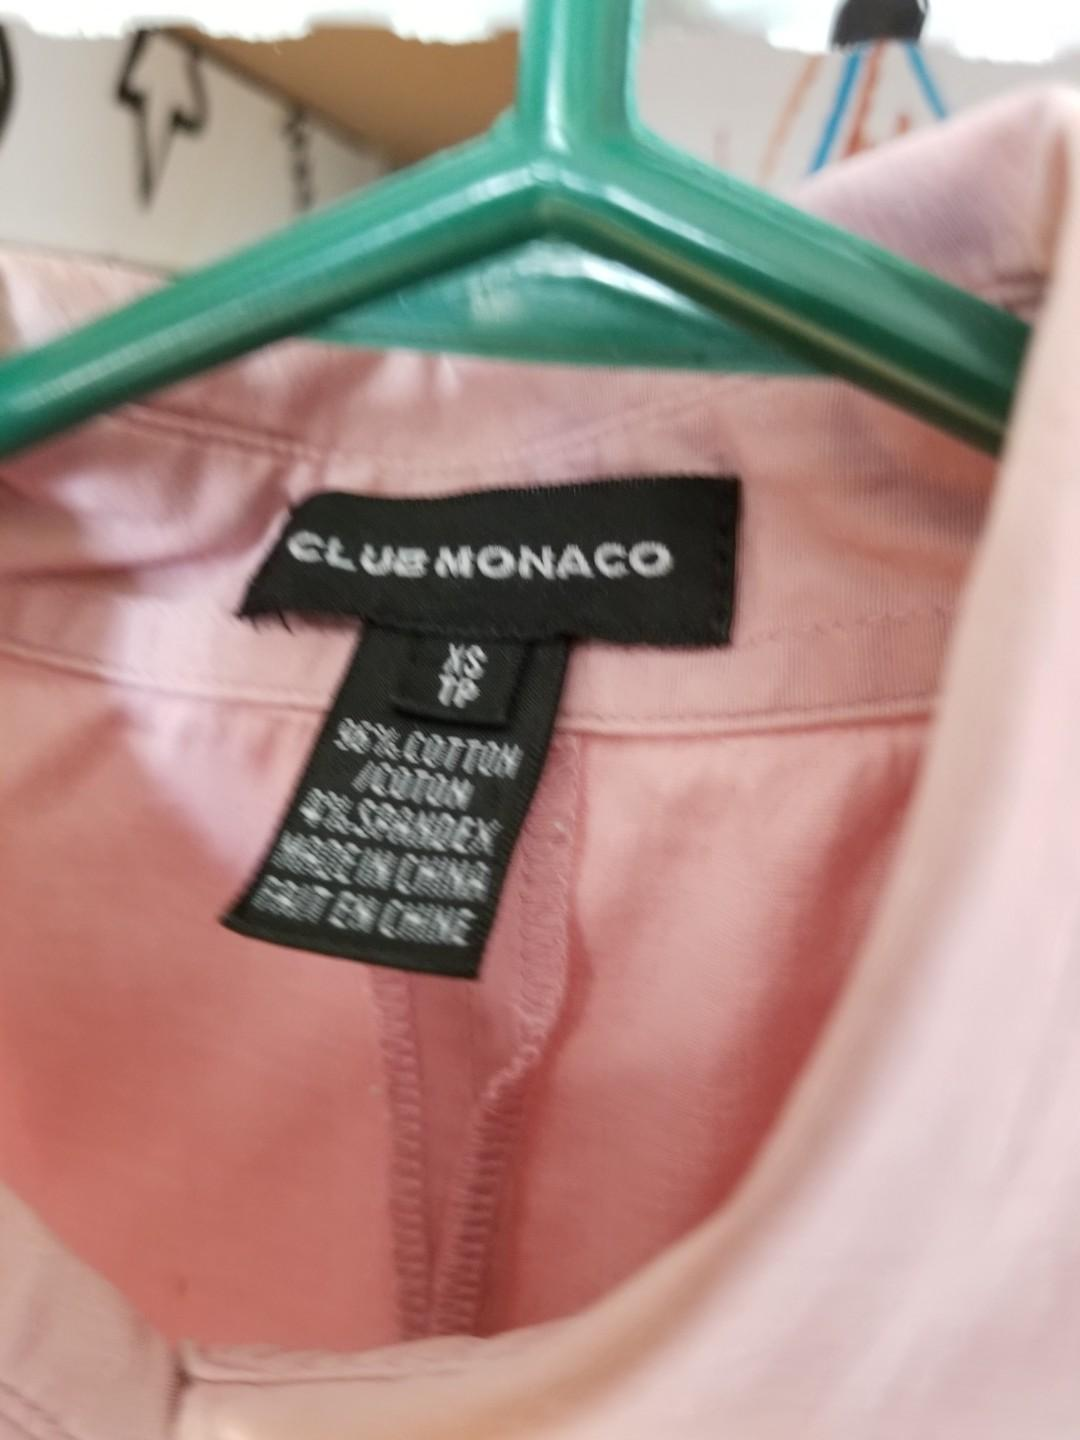 Club Monaco womens dress shirt work clothes. Size xs. Pick up 20 Bay or  Gerrard and main or Yorkville. Selling for $10. Excellent condition. This will land you that role. Retails for $90